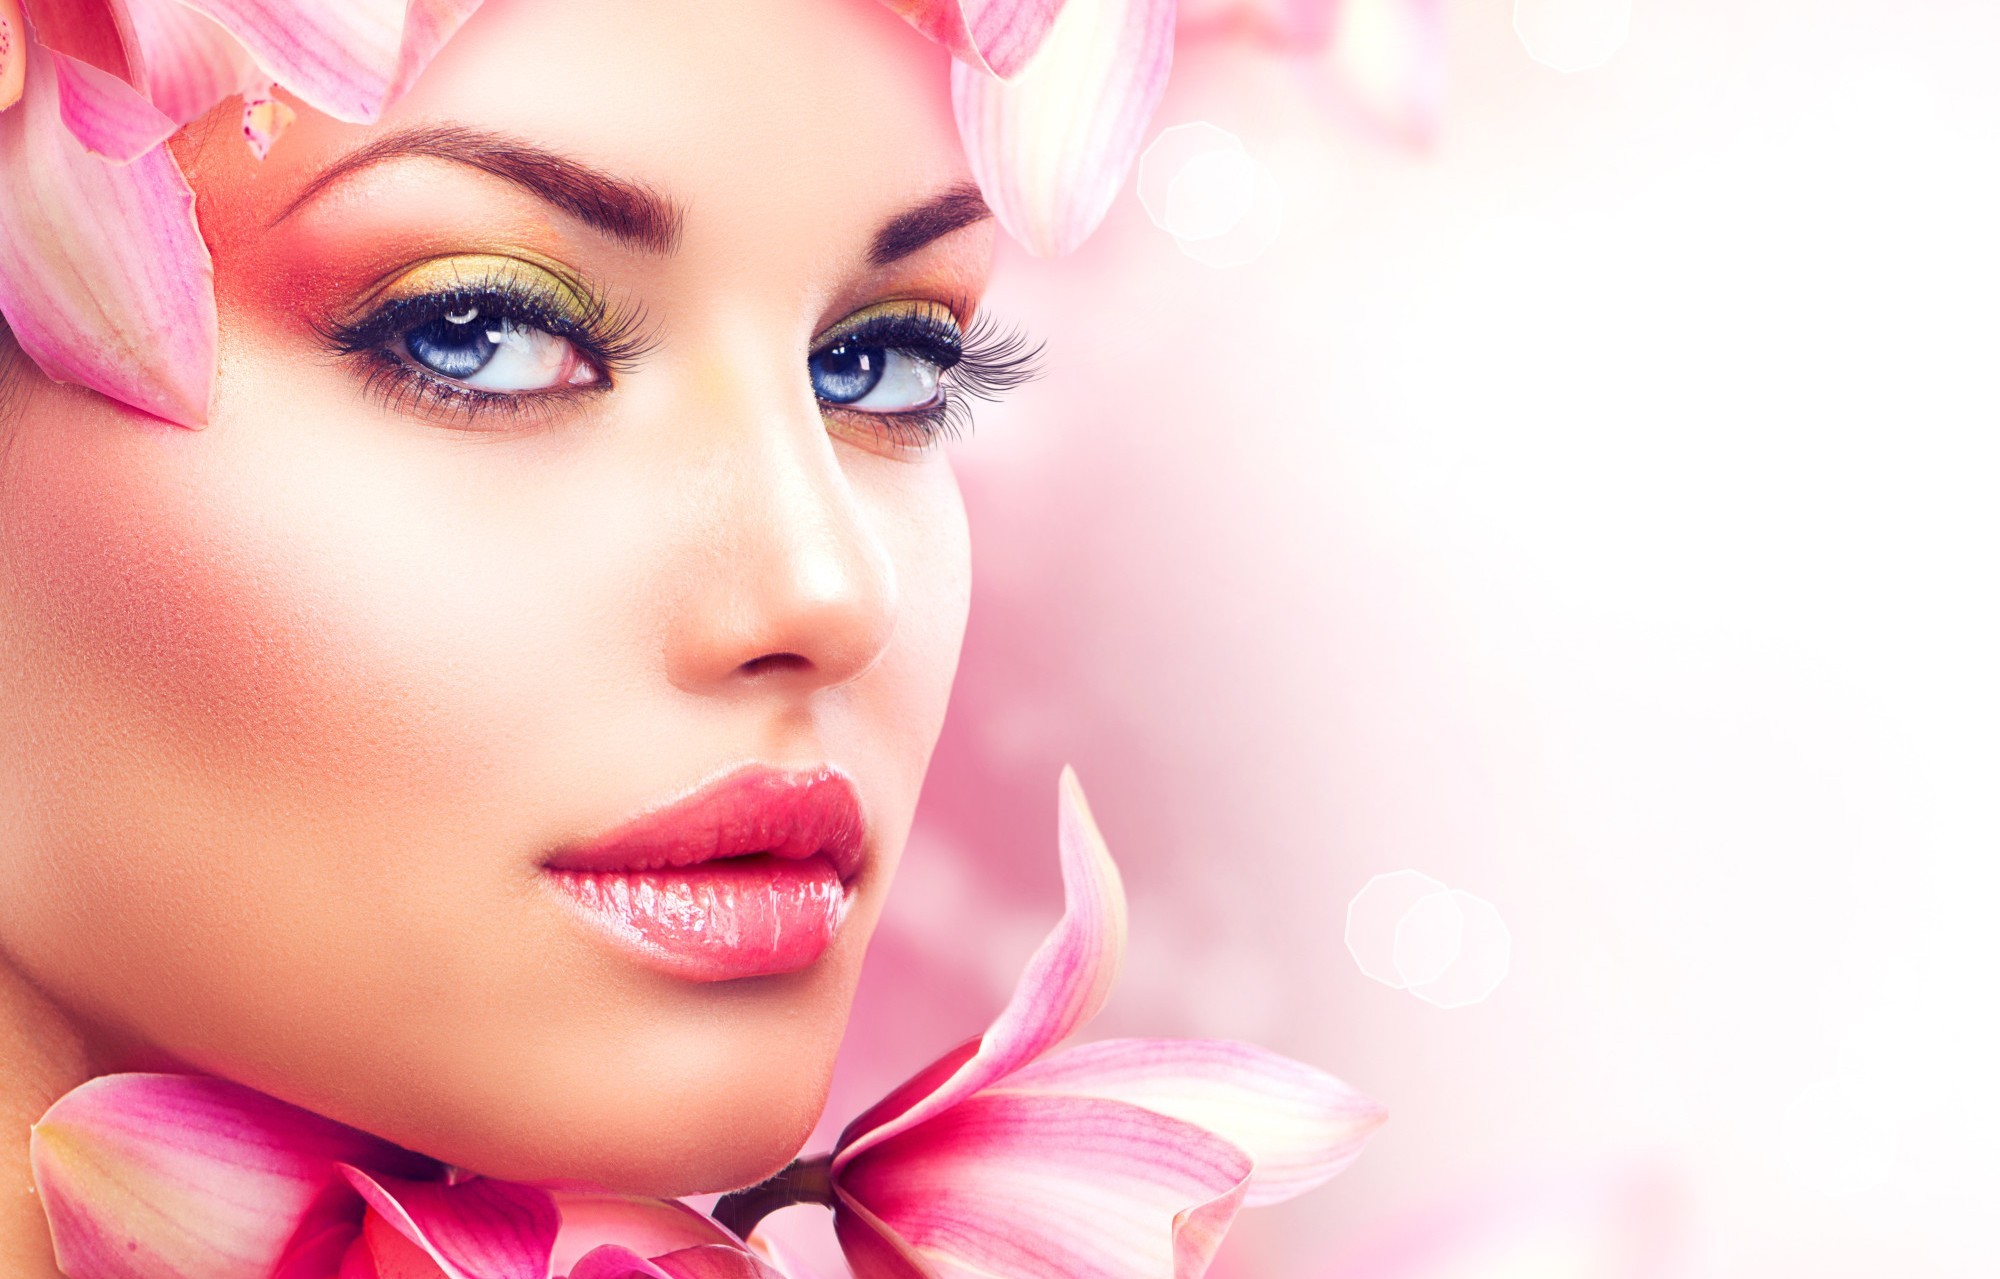 Beauty salon wallpaper 41 images Salon wallpaper